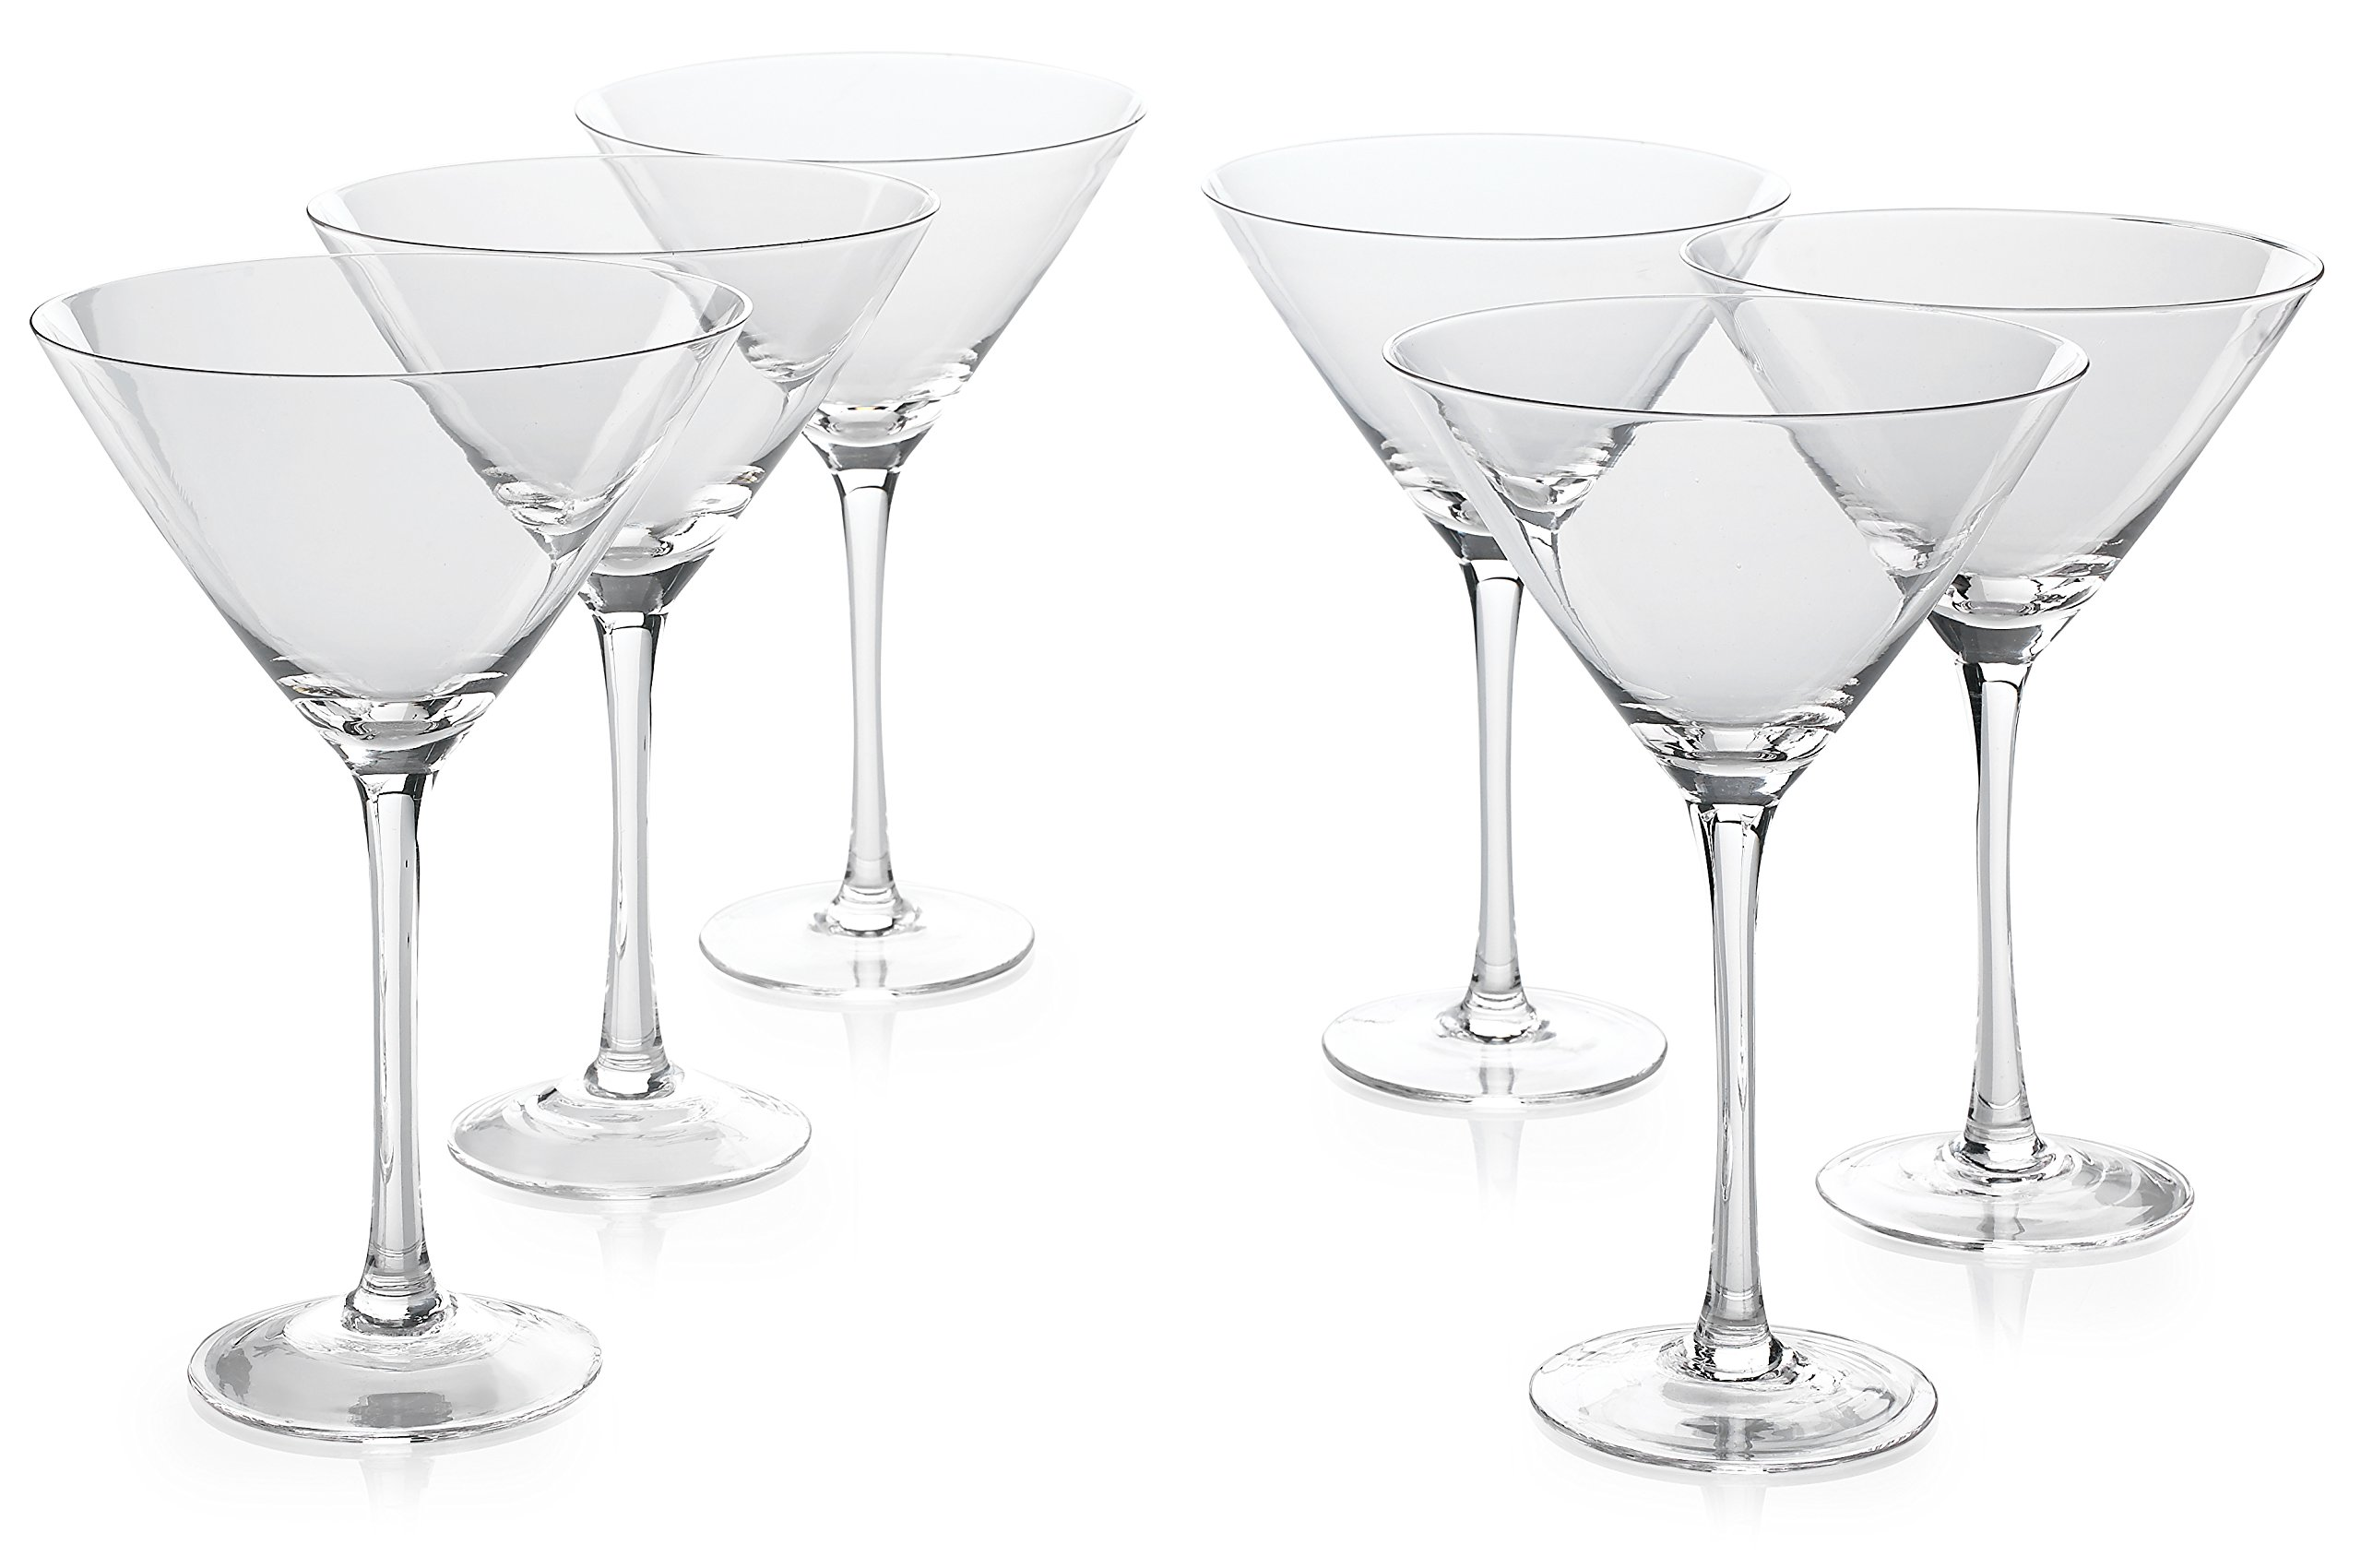 PARNOO Classic Premium Martini Glasses (18 Ounce) Set Of 6